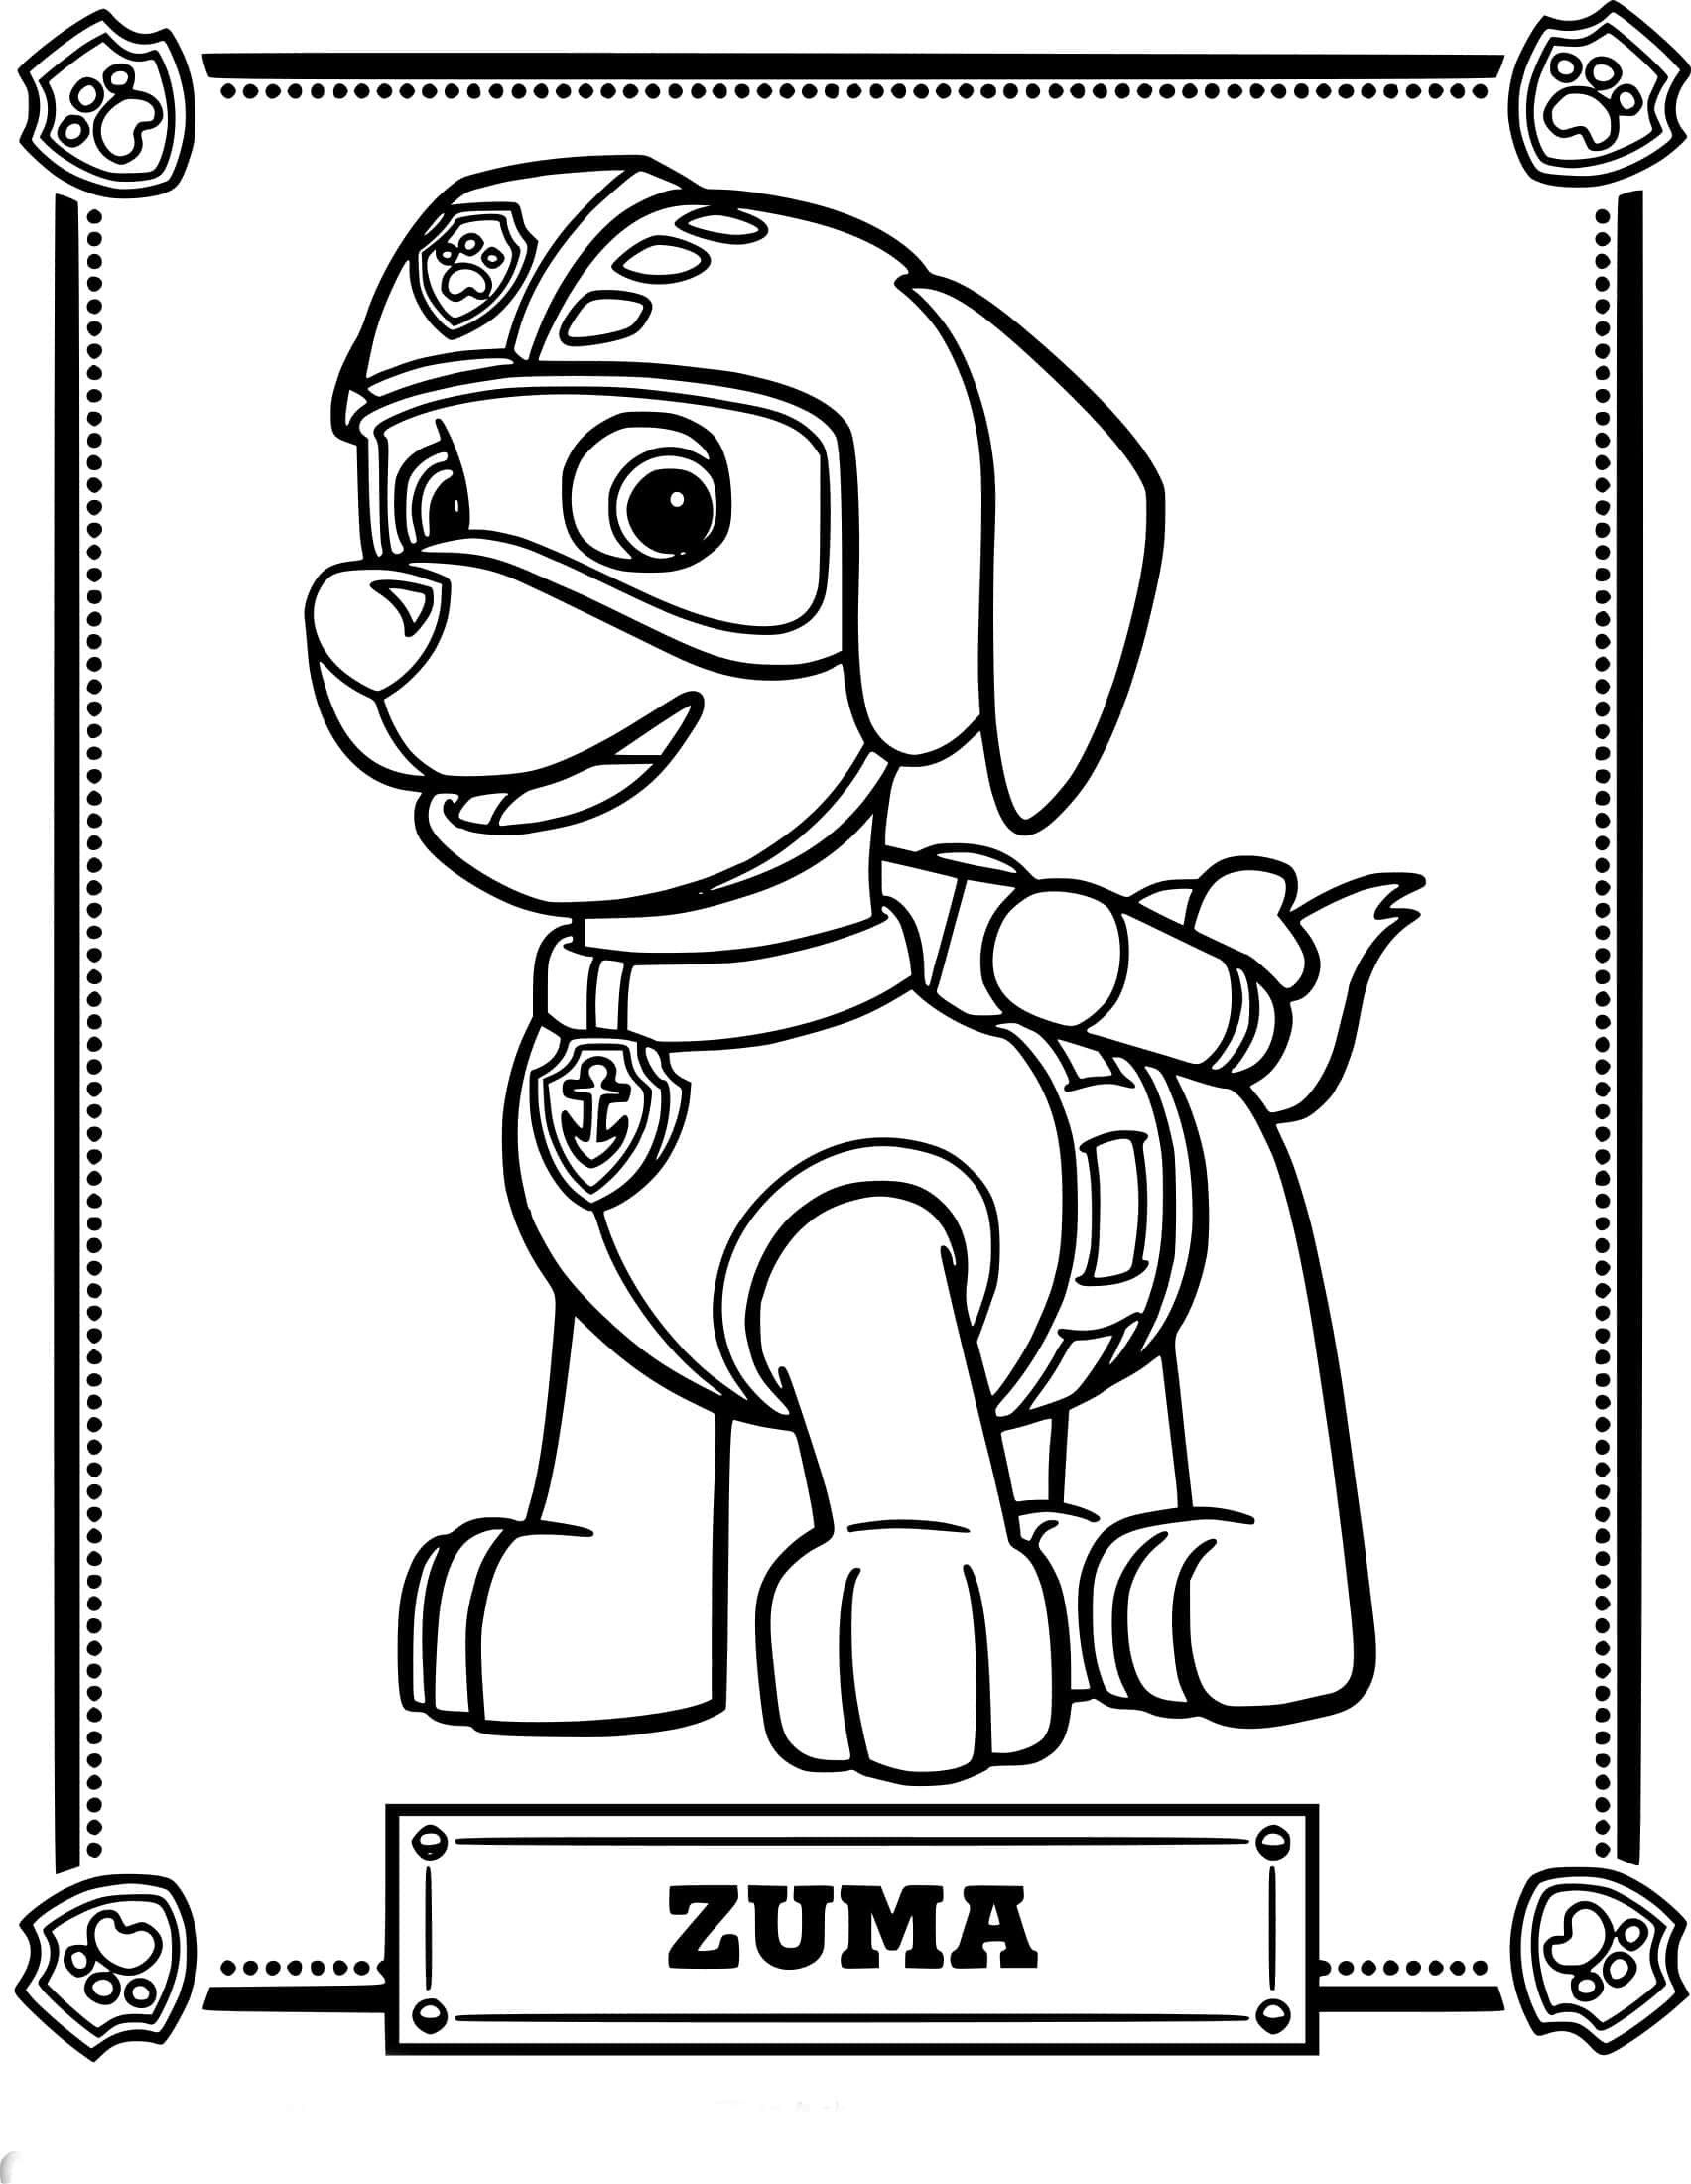 Zuma Paw Patrol Coloring Page Youngandtae Com Paw Patrol Coloring Paw Patrol Coloring Pages Paw Patrol Cartoon